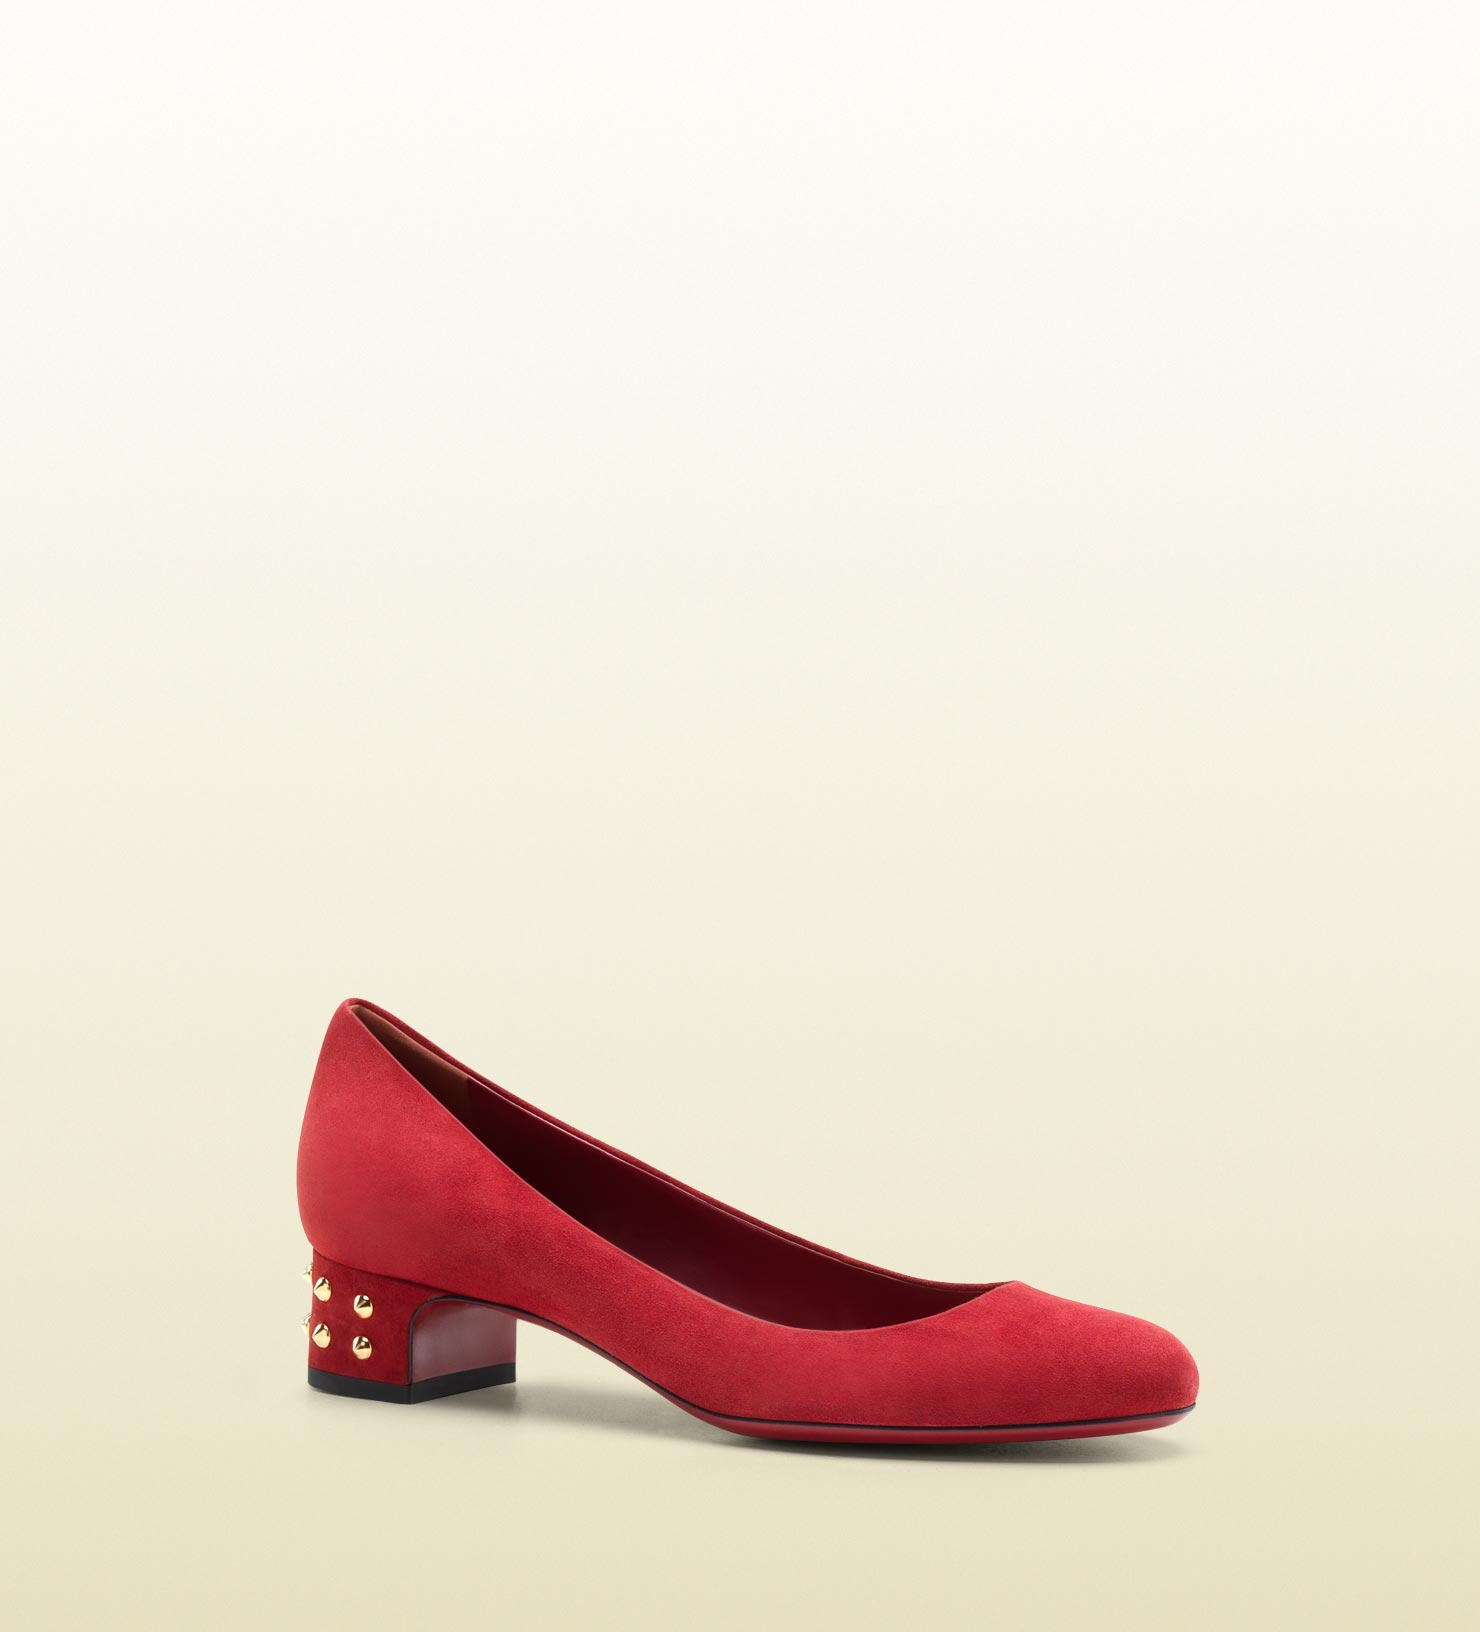 8b9ff1595d9 Lyst - Gucci Jacquelyne Studded Low Heel Pump in Red